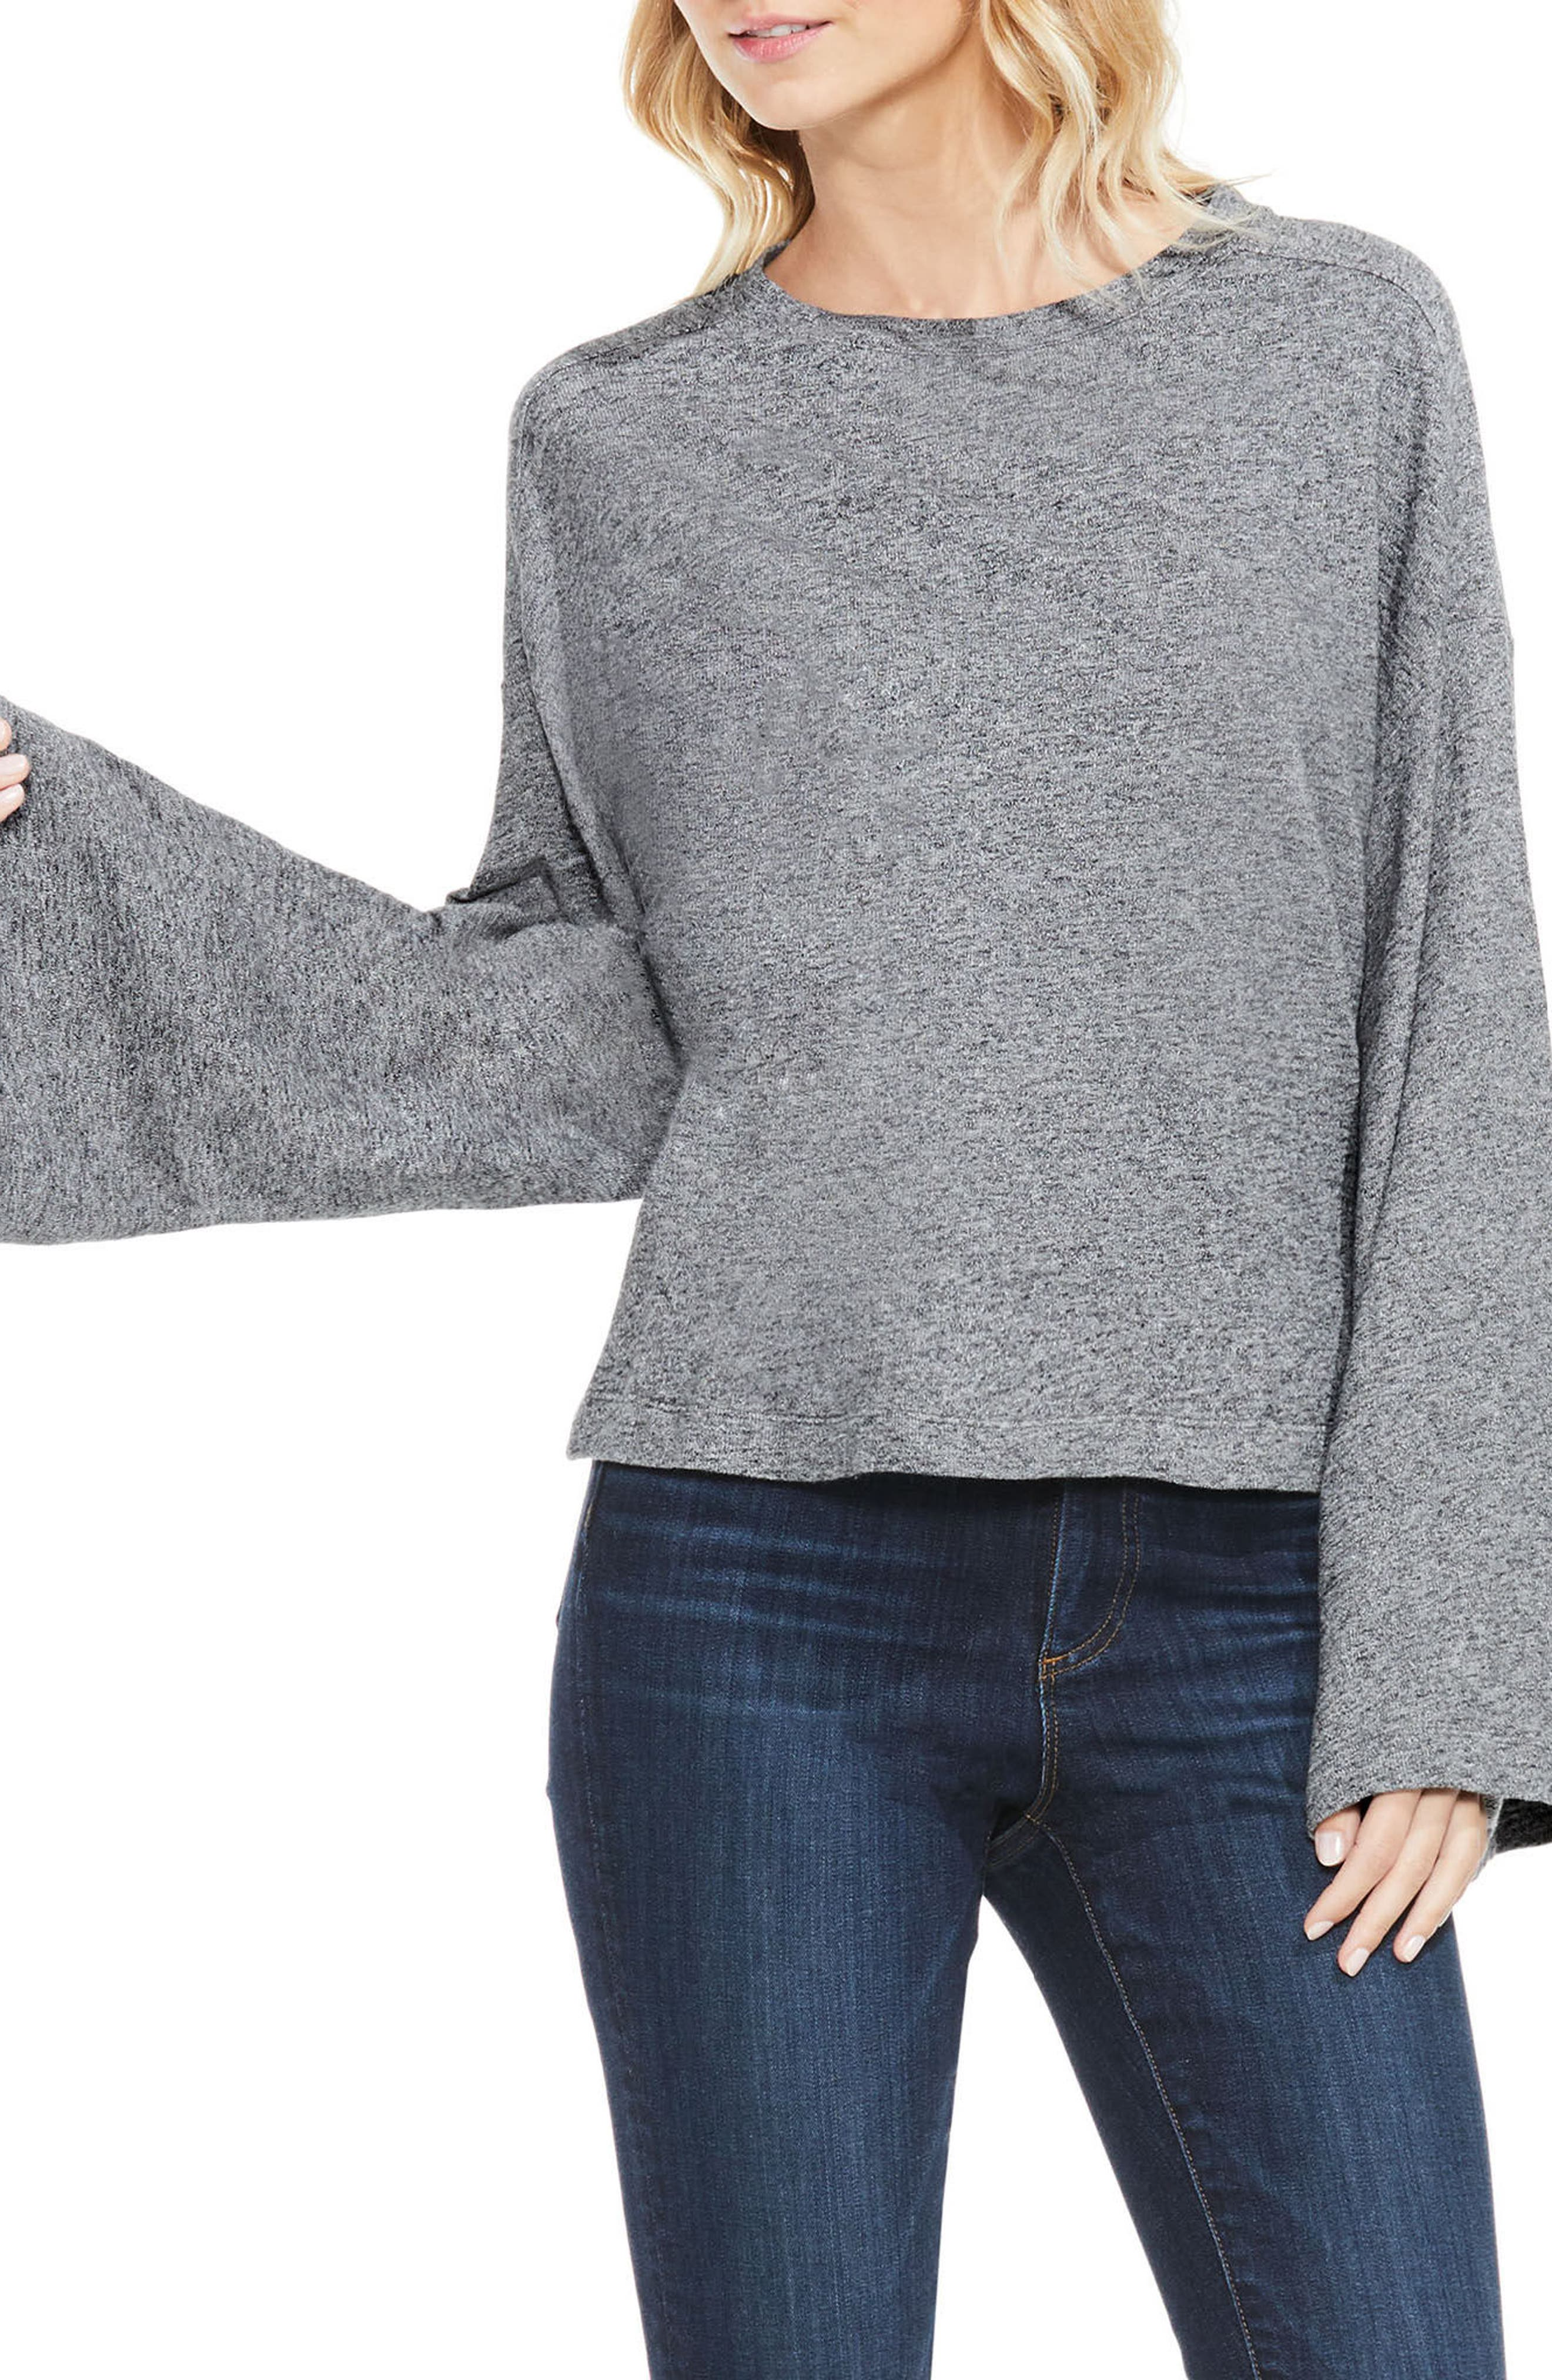 Main Image - Two by Vince Camuto Marled Bell Sleeve Top